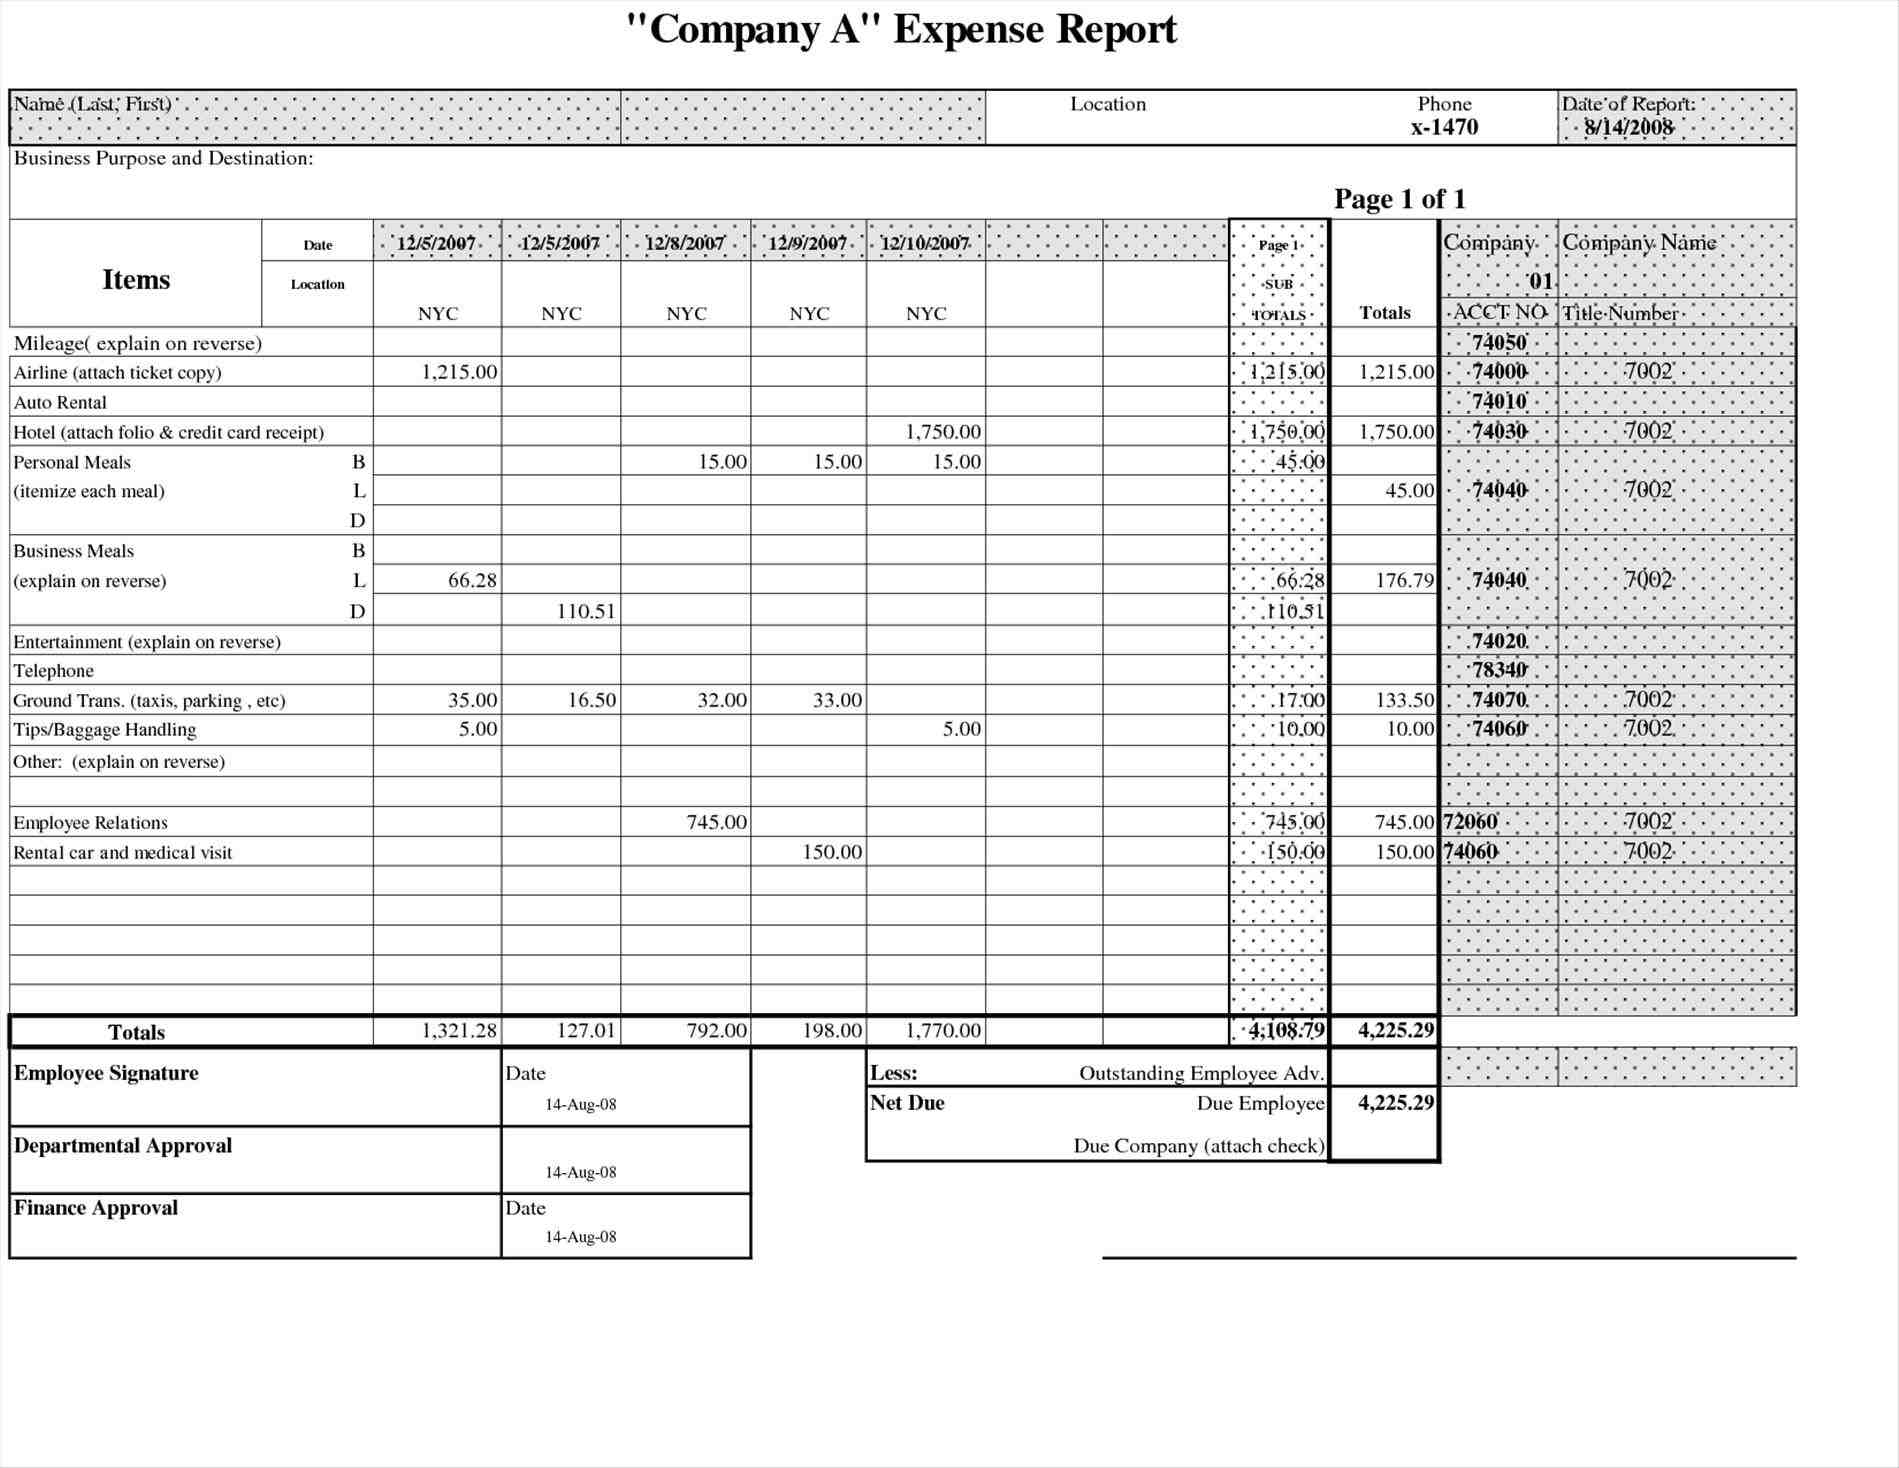 template excel awesome small business free form pdf doc for daily free Monthly Expense Report Template expense report form pdf